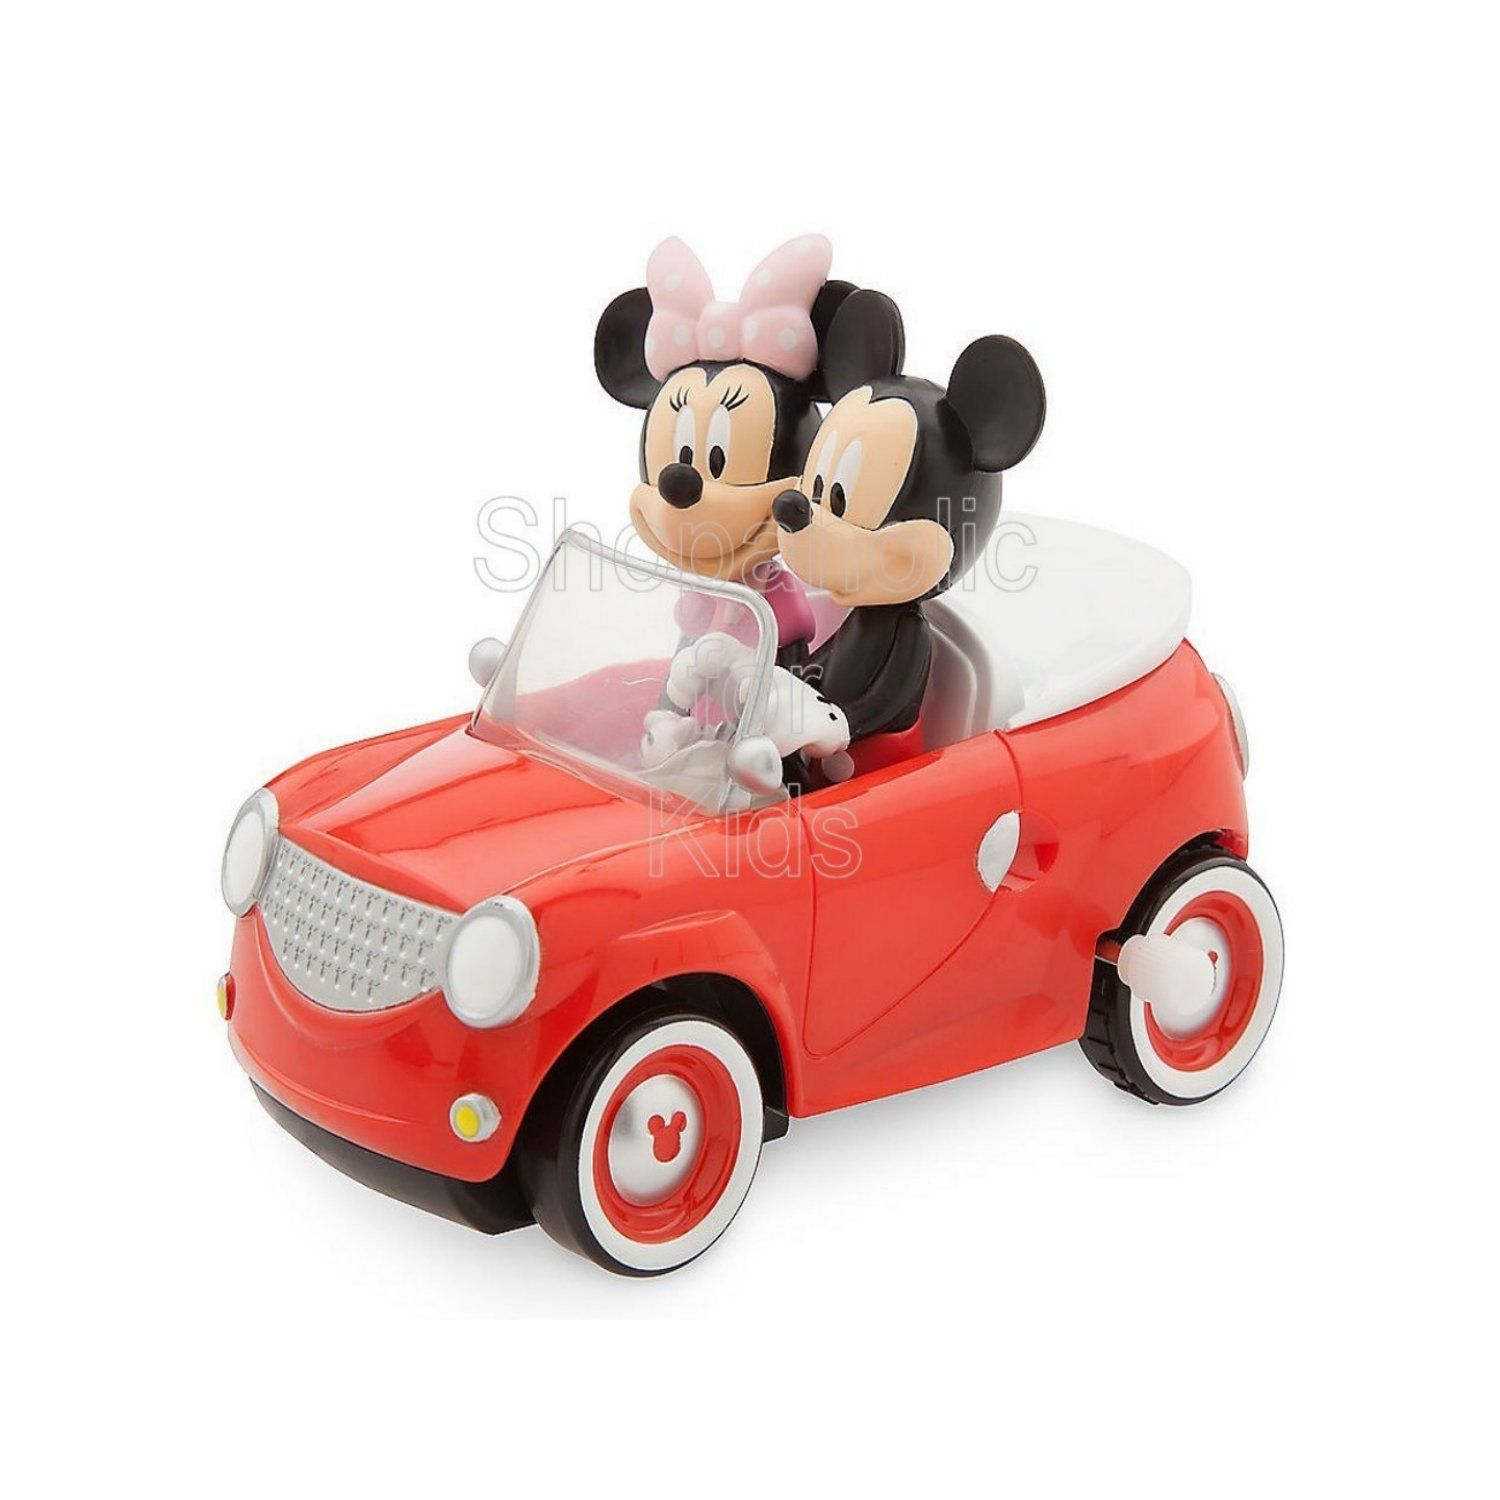 Disney mickey and minnie mouse wind up car toy code 02280 to order